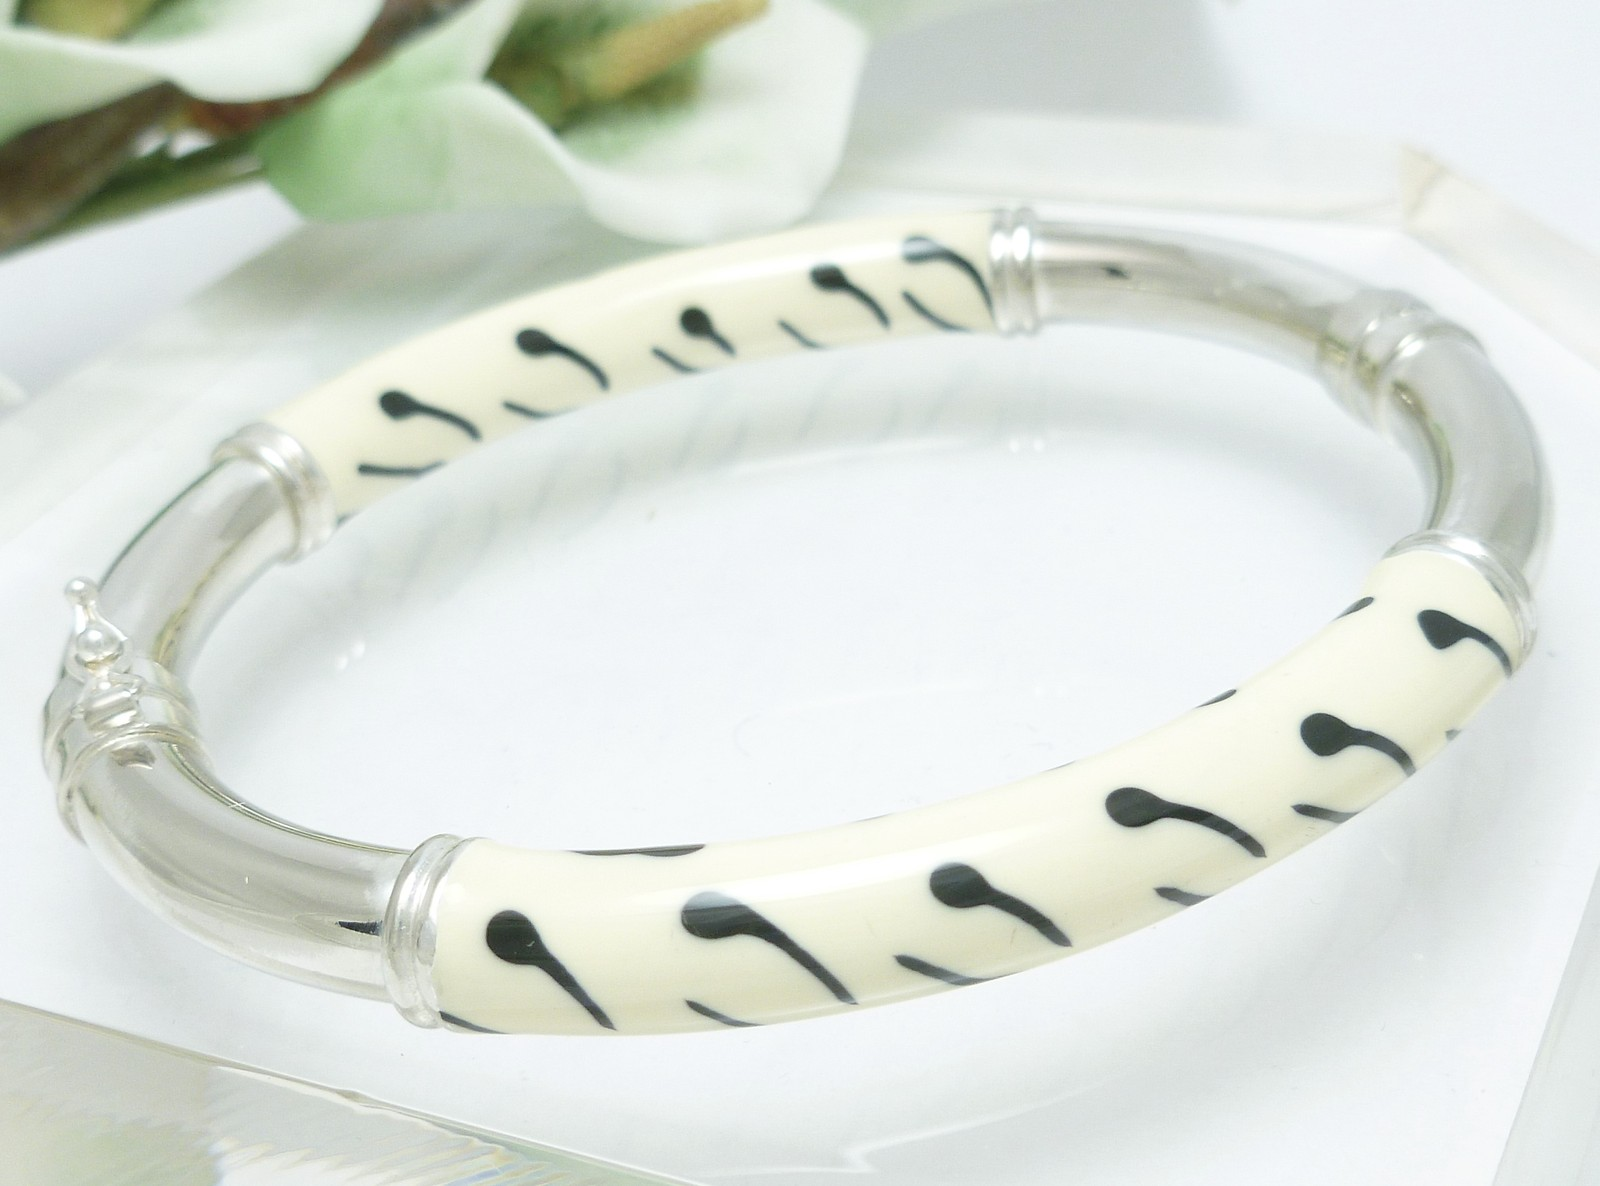 Sterling Enamel Zebra Print Bangle Bracelet Average Wrist Size 7 inch